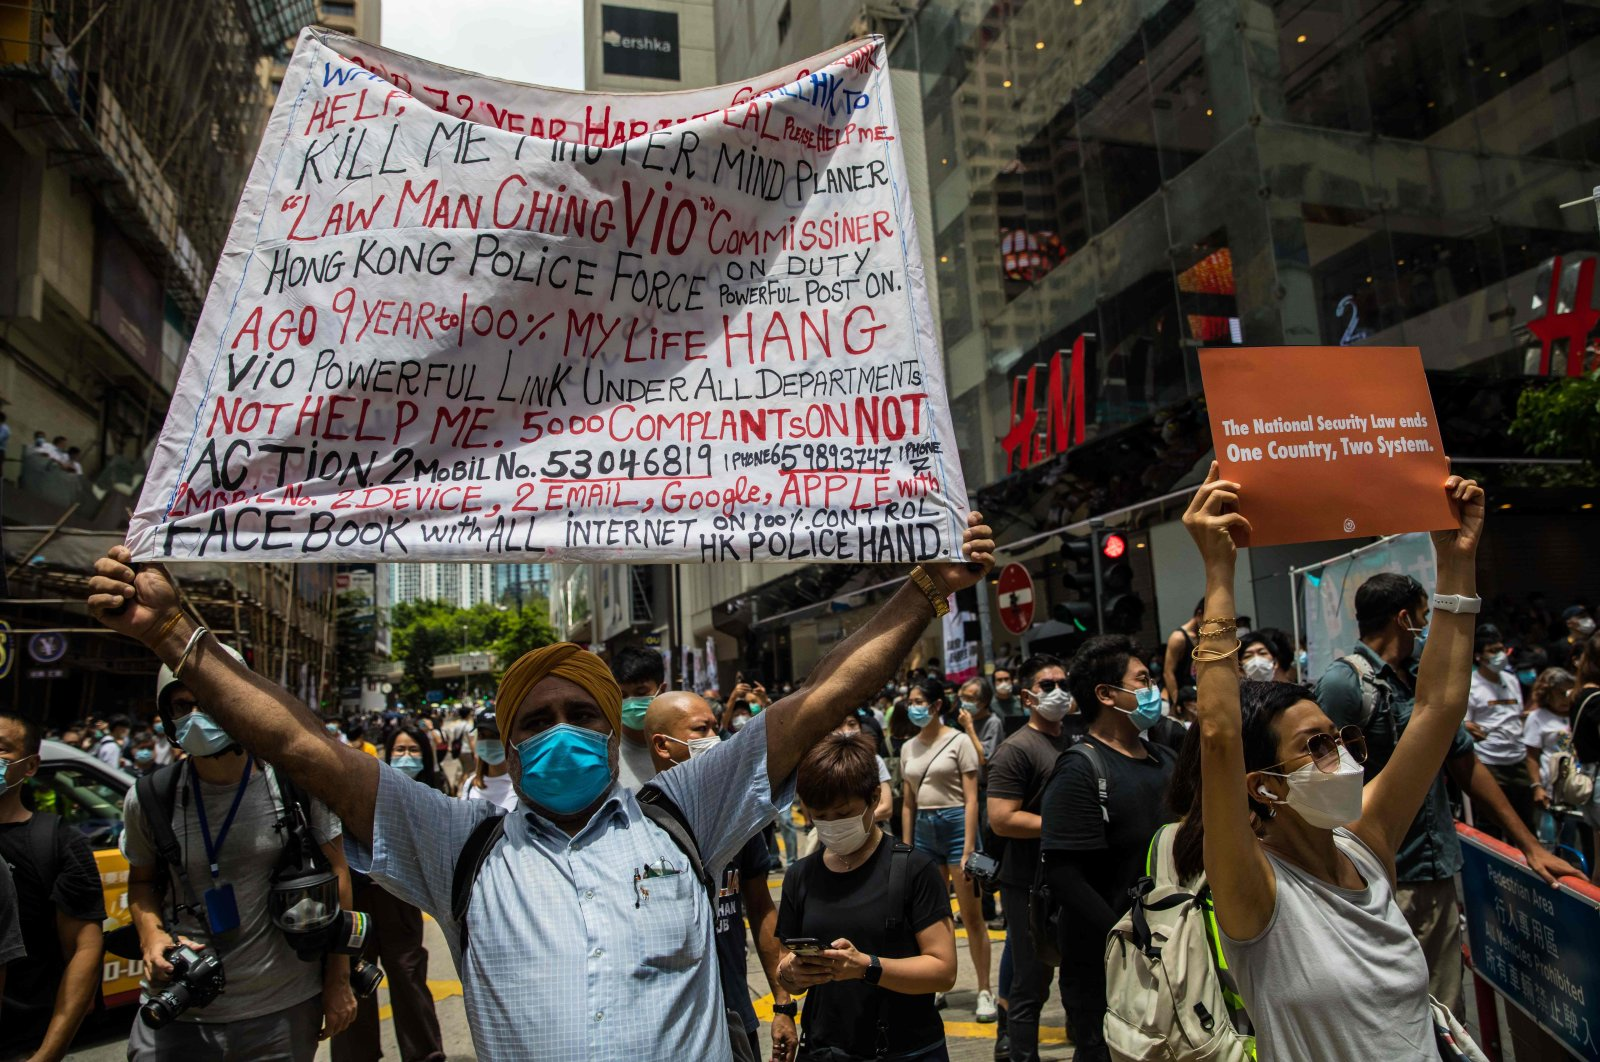 Protesters display banners during a rally against a new national security law in Hong Kong on July 1, 2020, on the 23rd anniversary of the city's handover from Britain to China. (AFP Photo)